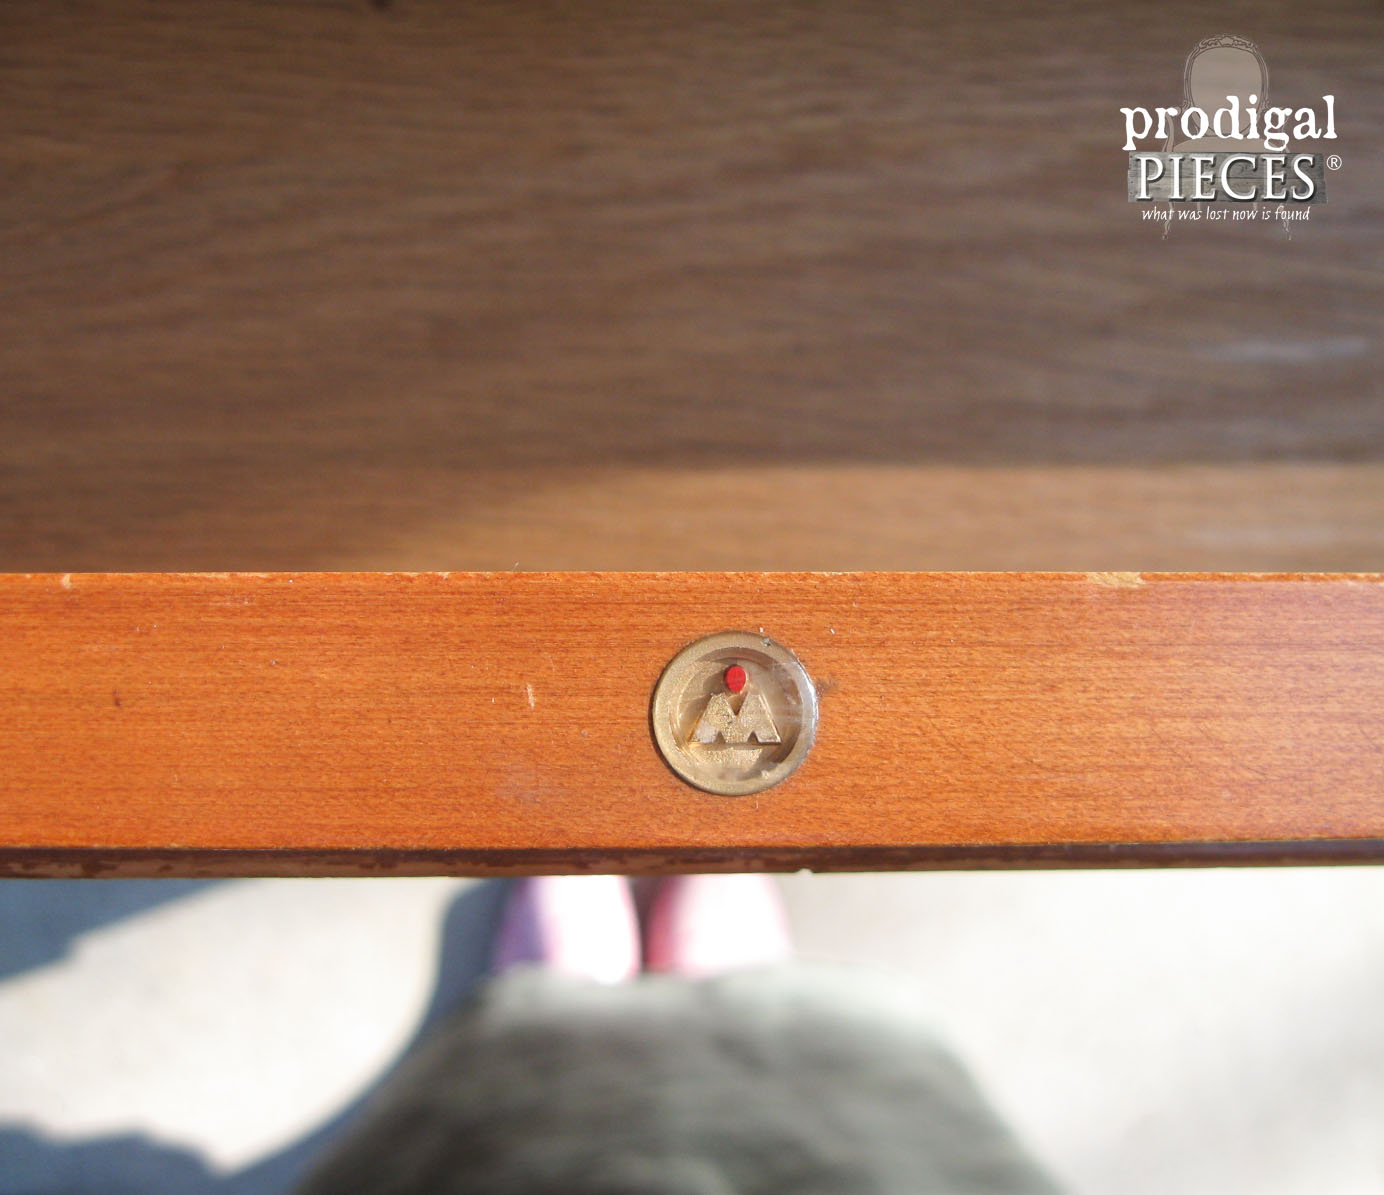 Mid Century Modern Mengel Logo in Chest of Drawers | Prodigal Pieces | www.prodigalpieces.com